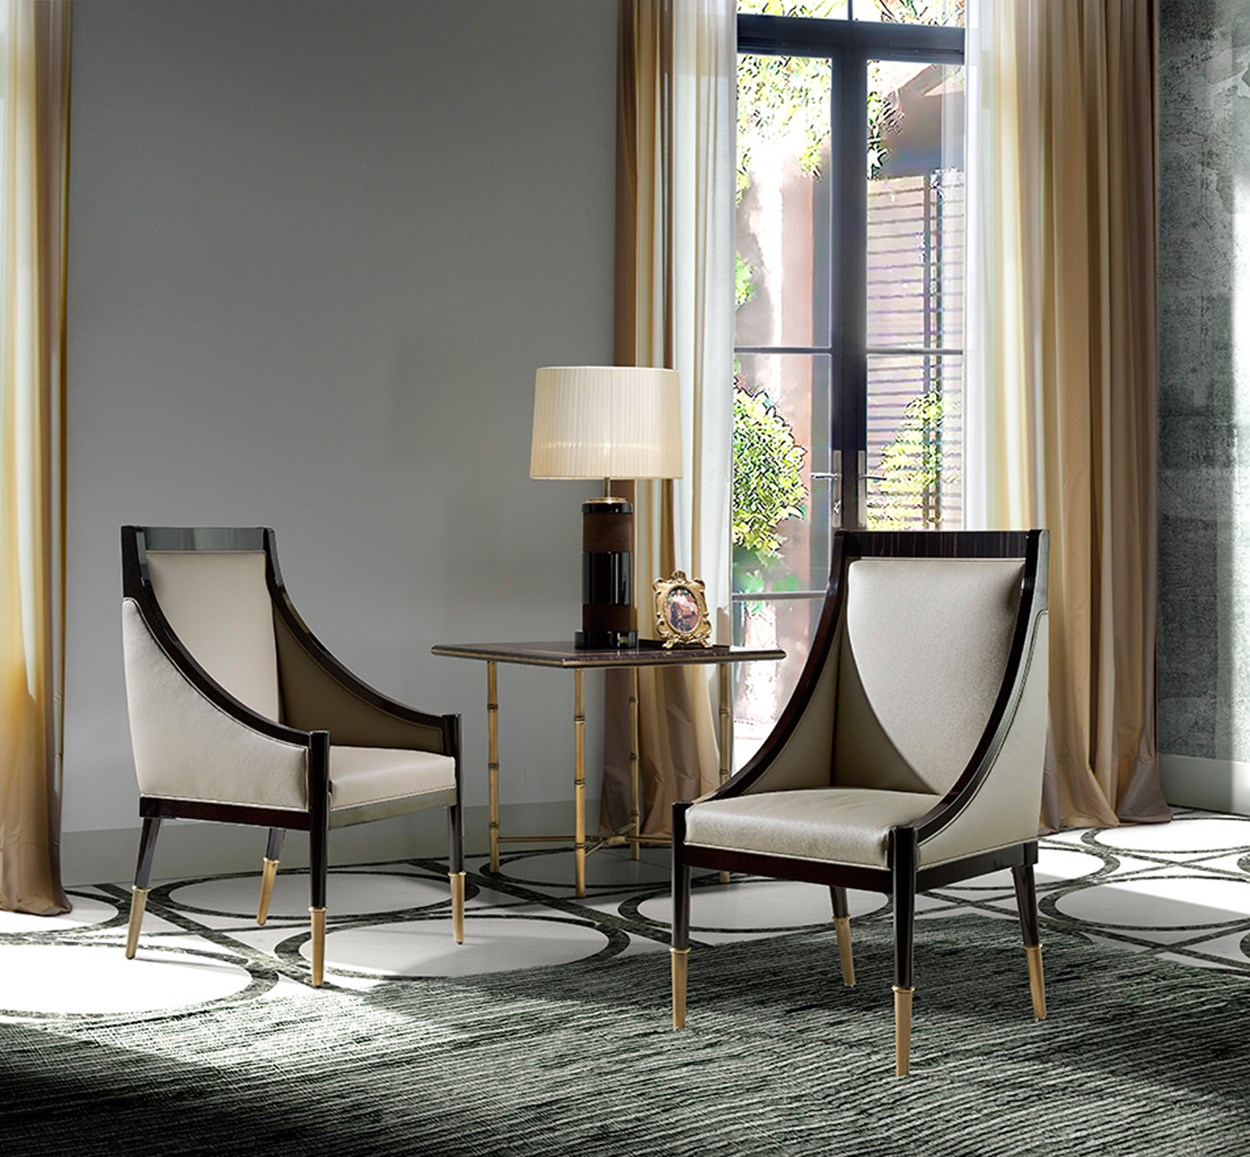 soher-iris-collection-armchairs-3.jpg